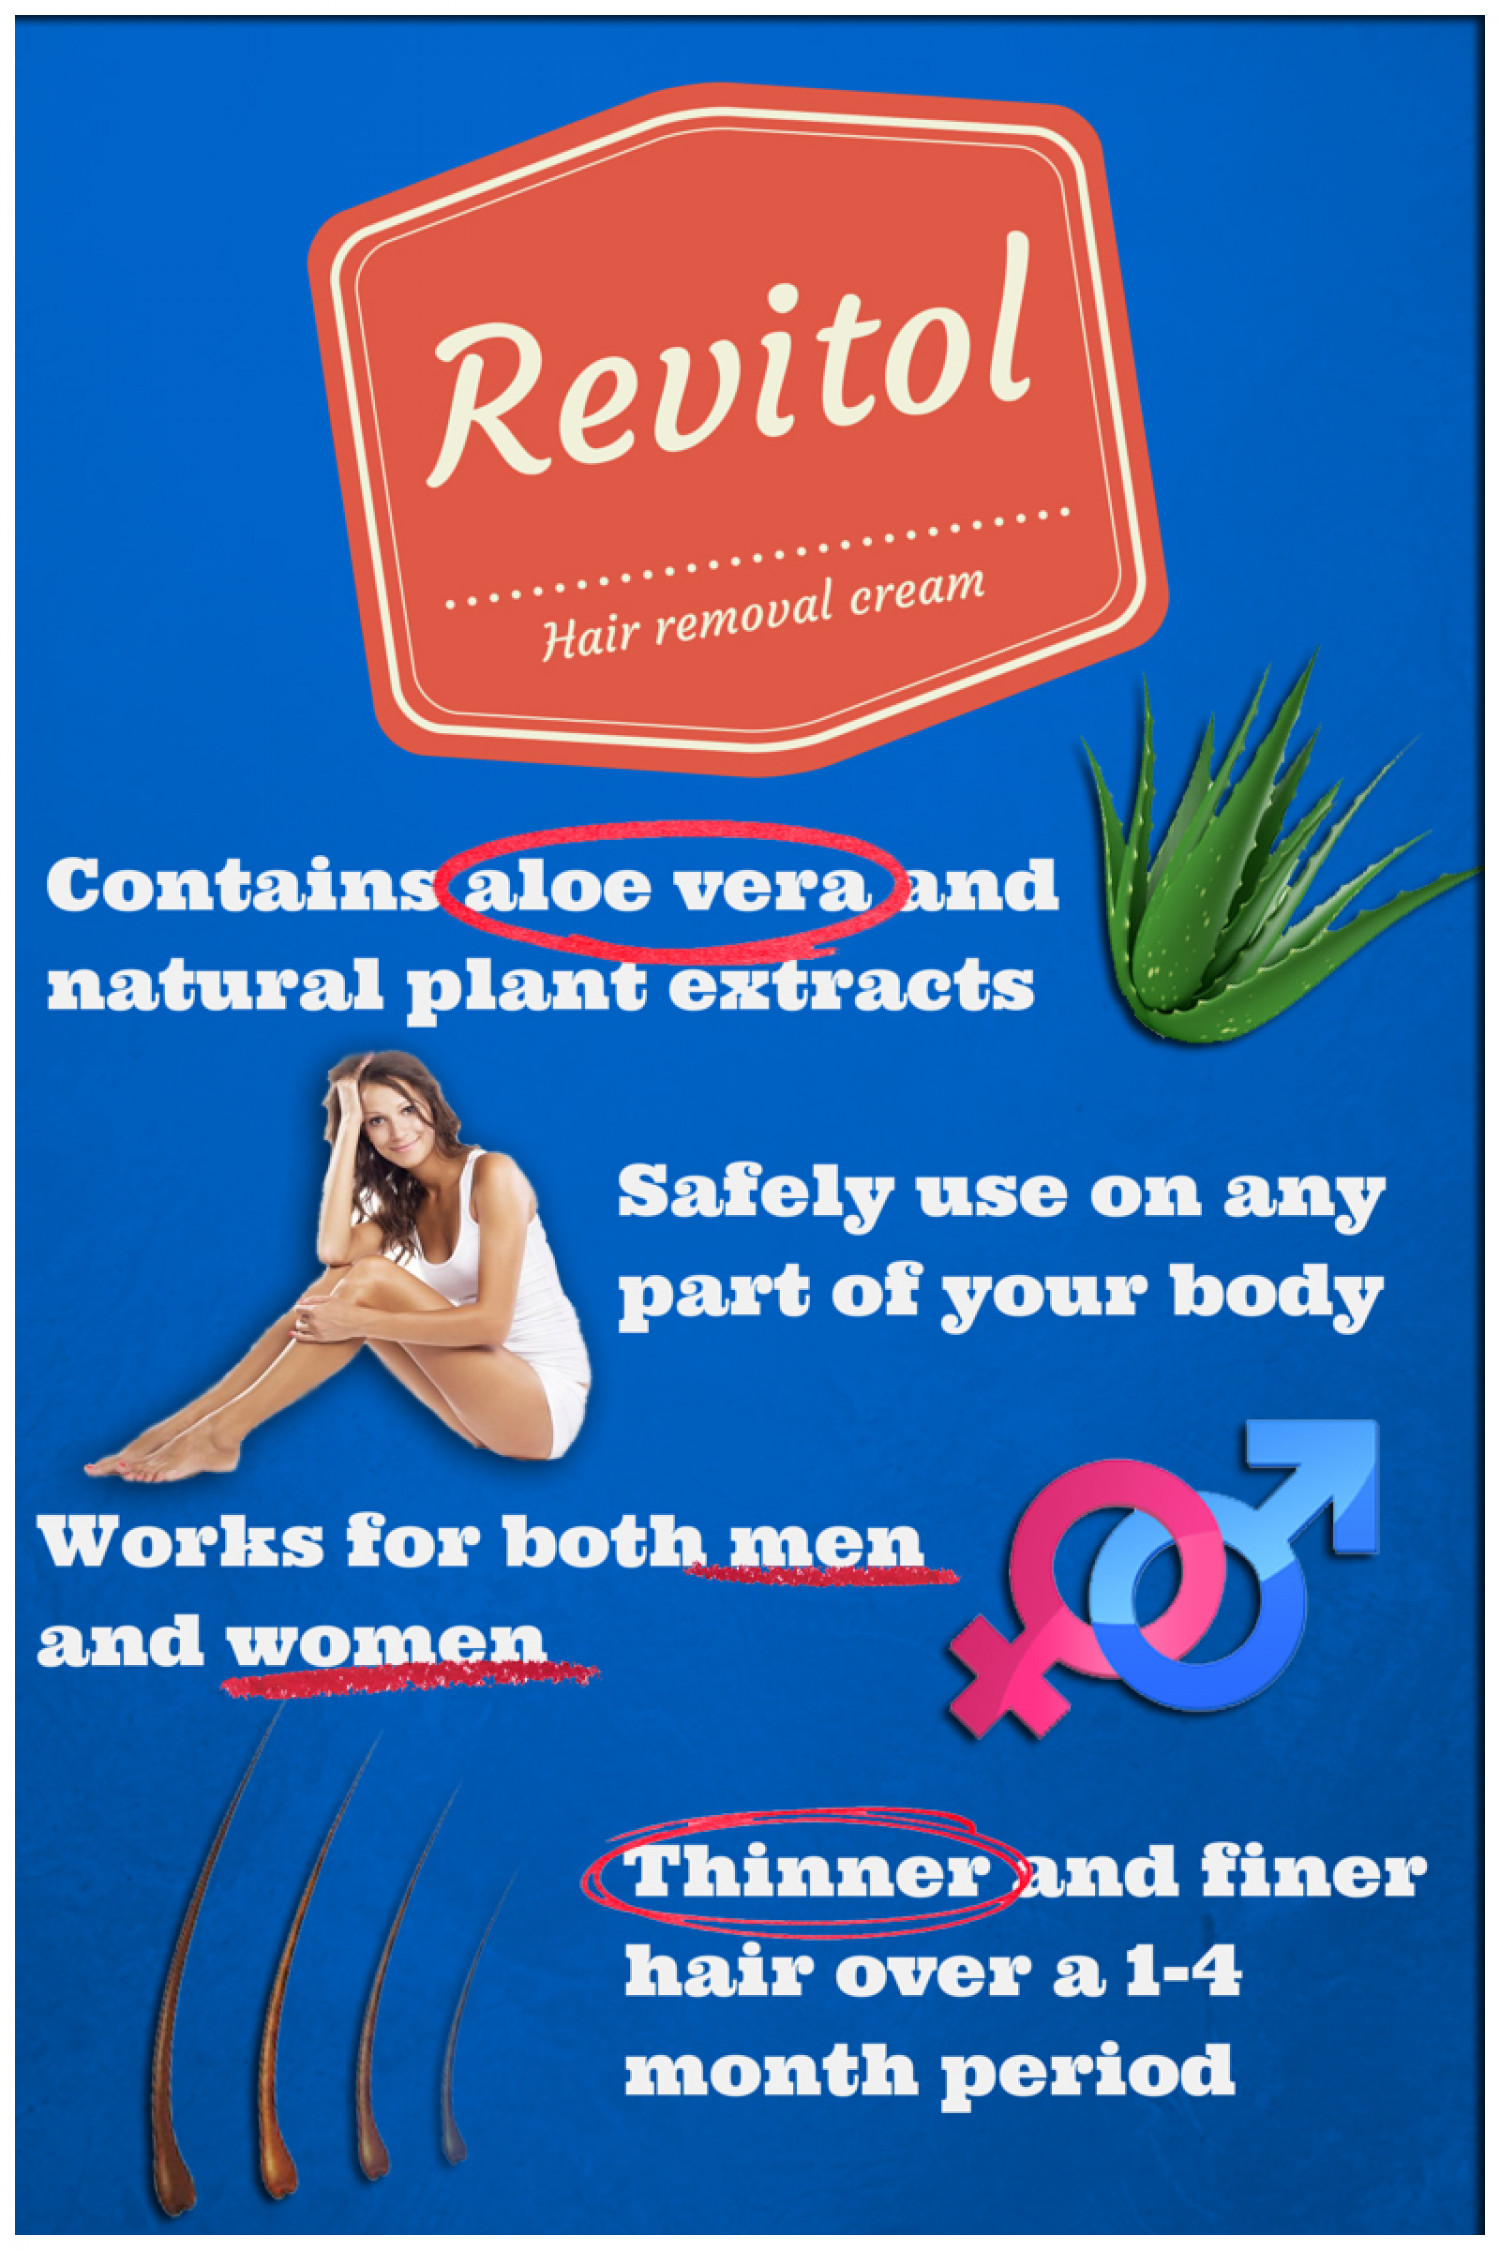 Revitol Hair Removal Cream Infgraphic Visual Ly